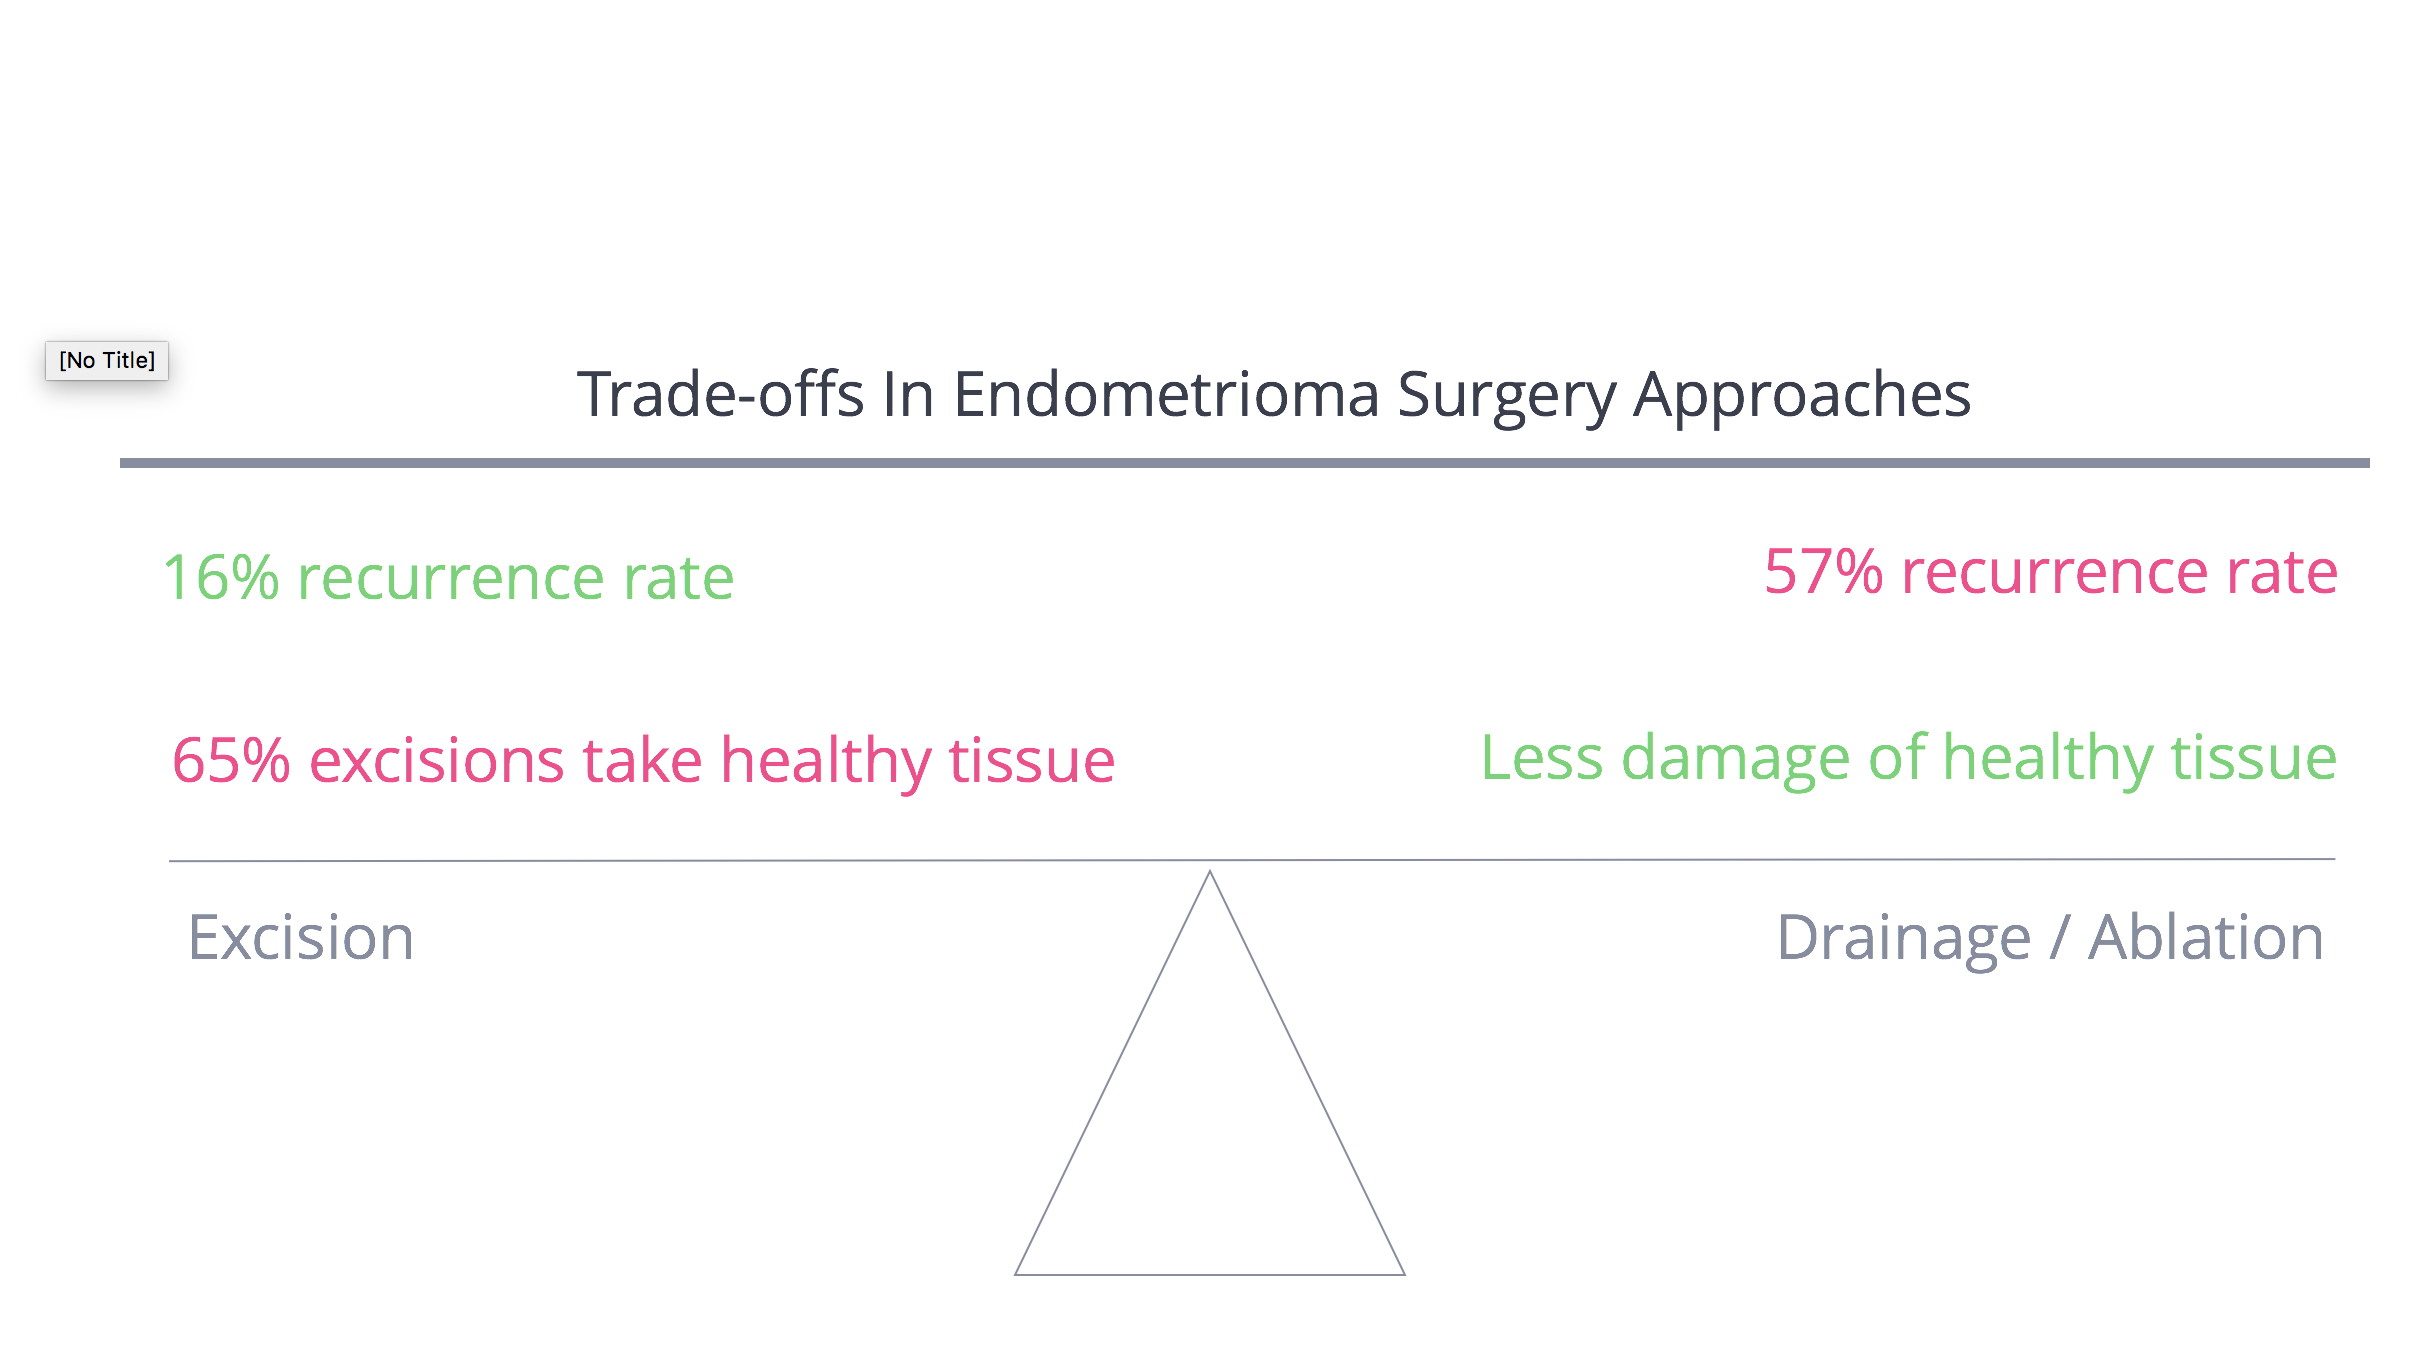 Endometrioma Surgery Approaches - Excision vs. Ablation